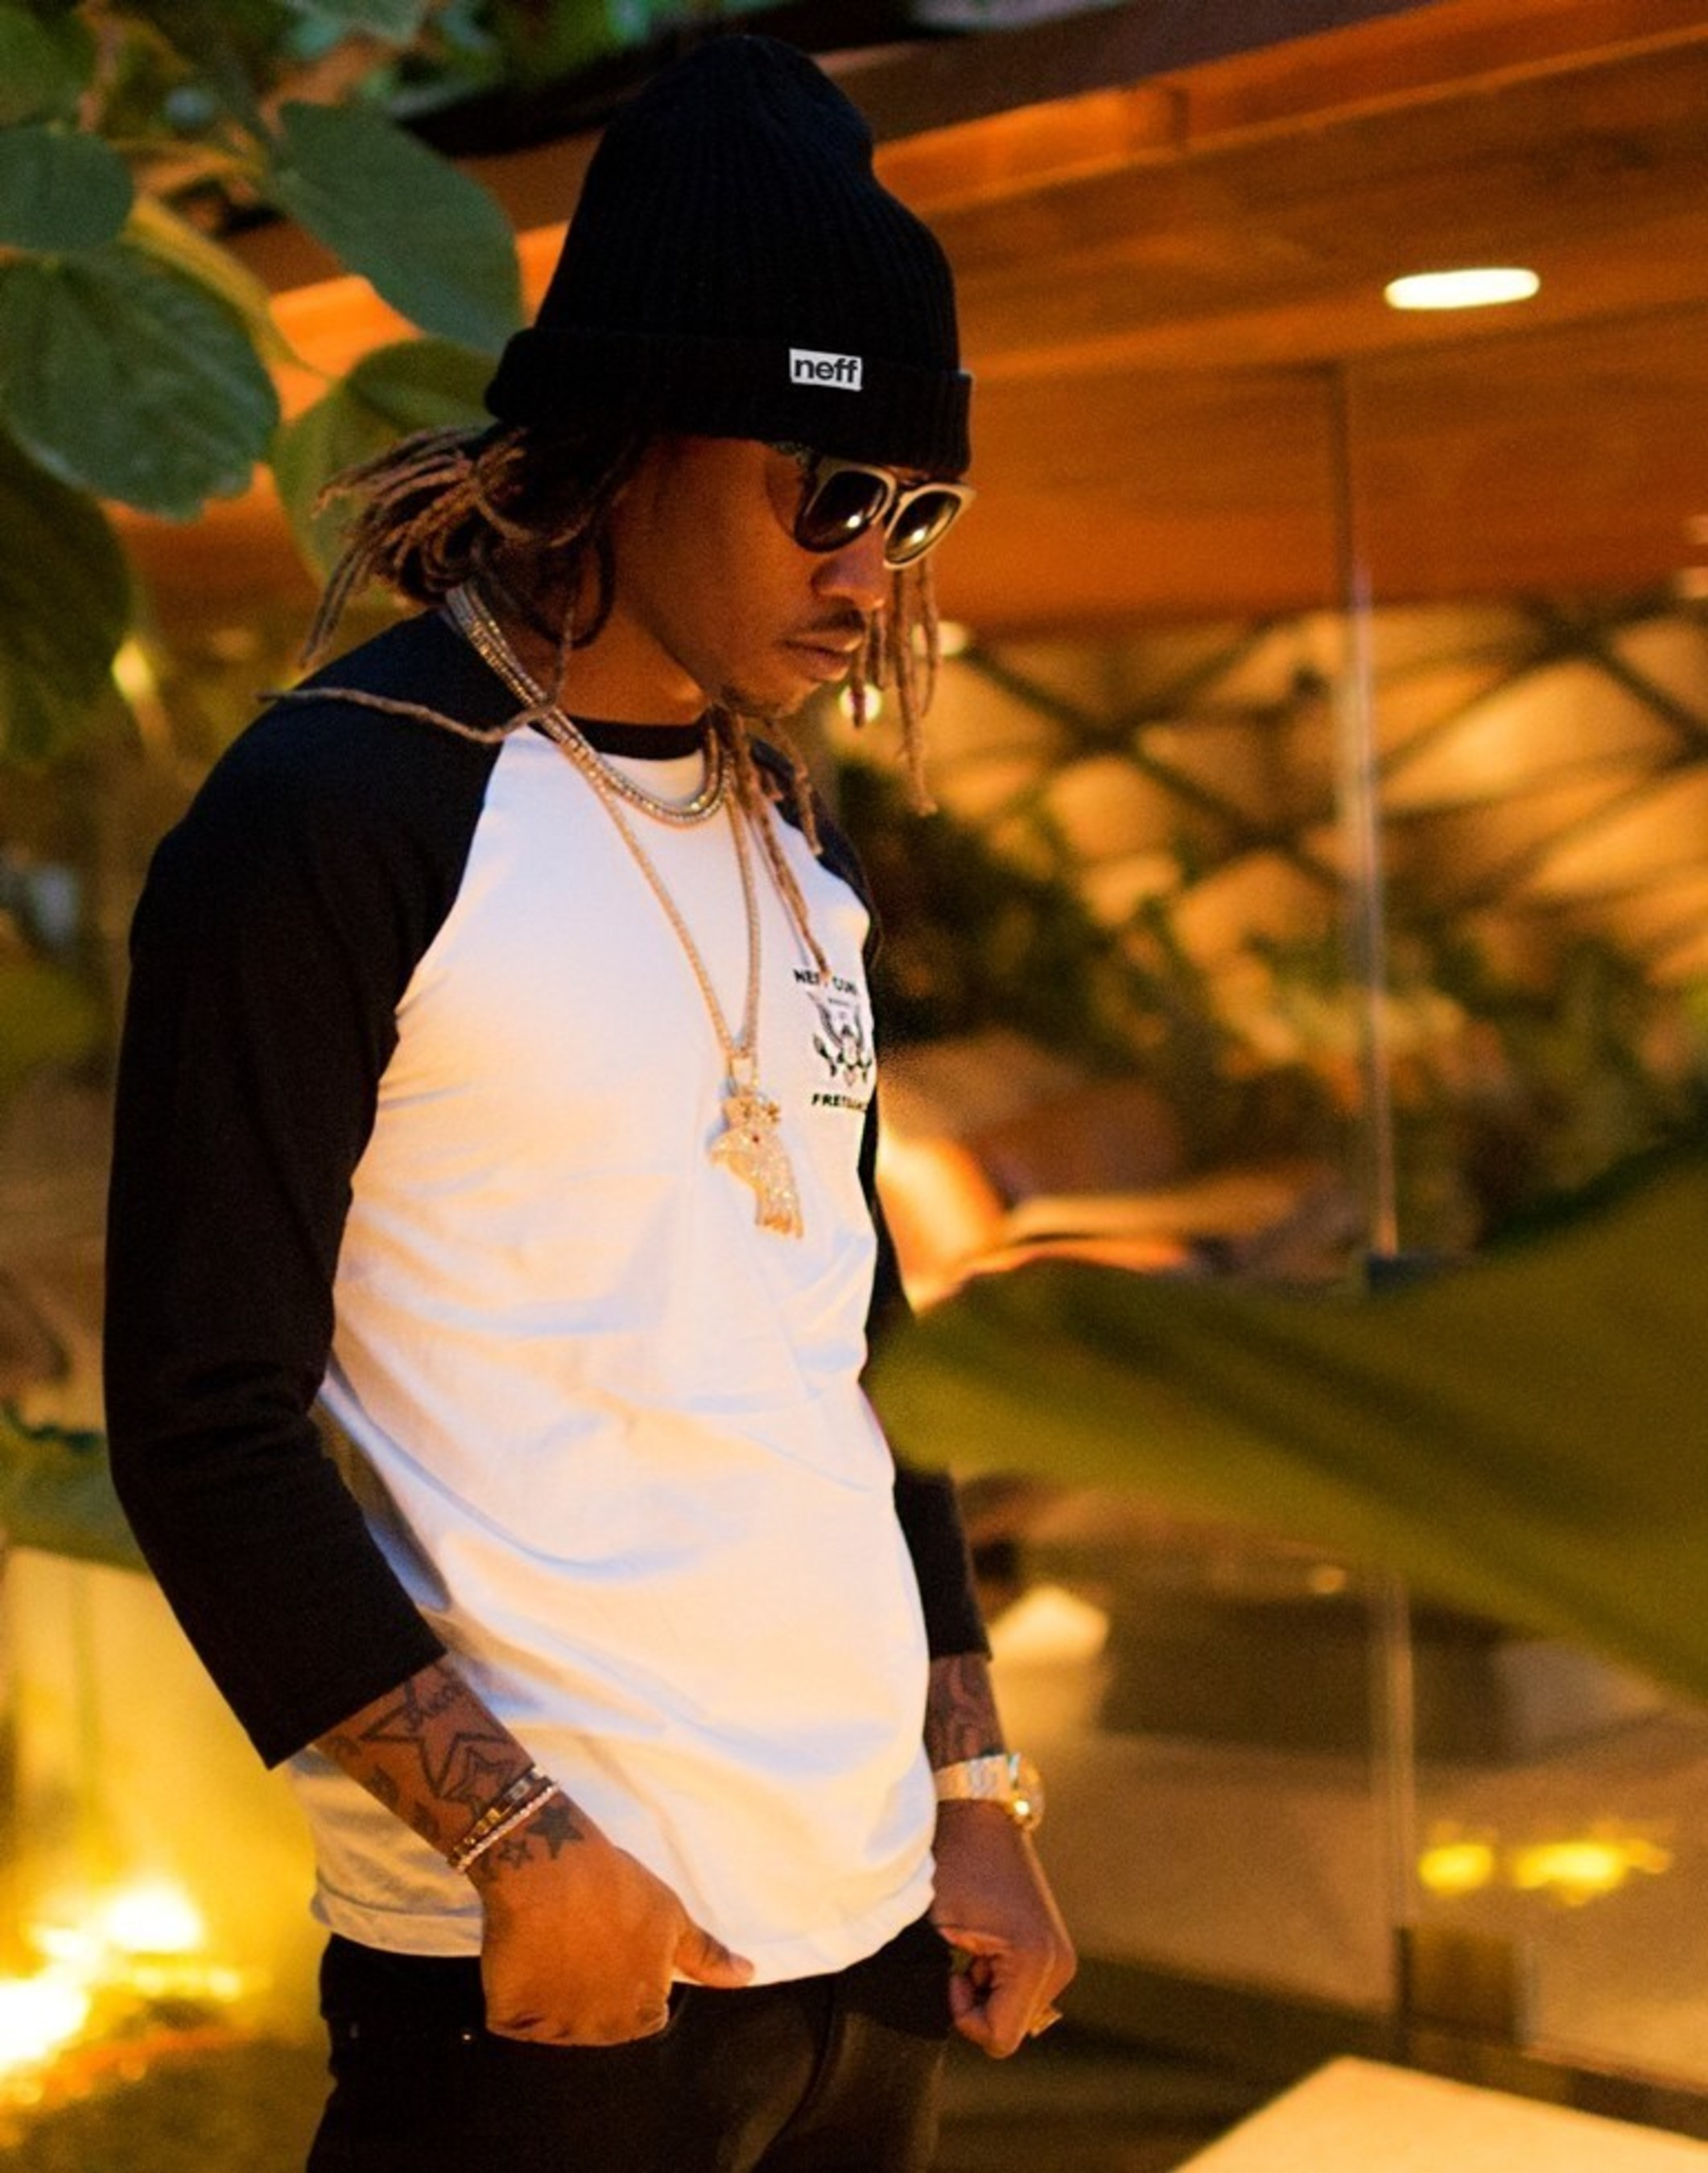 NEFF Headwear launches collaboration with recording artist Future. NEFF x Freebandz set to hit stores nationwide on December 22nd.